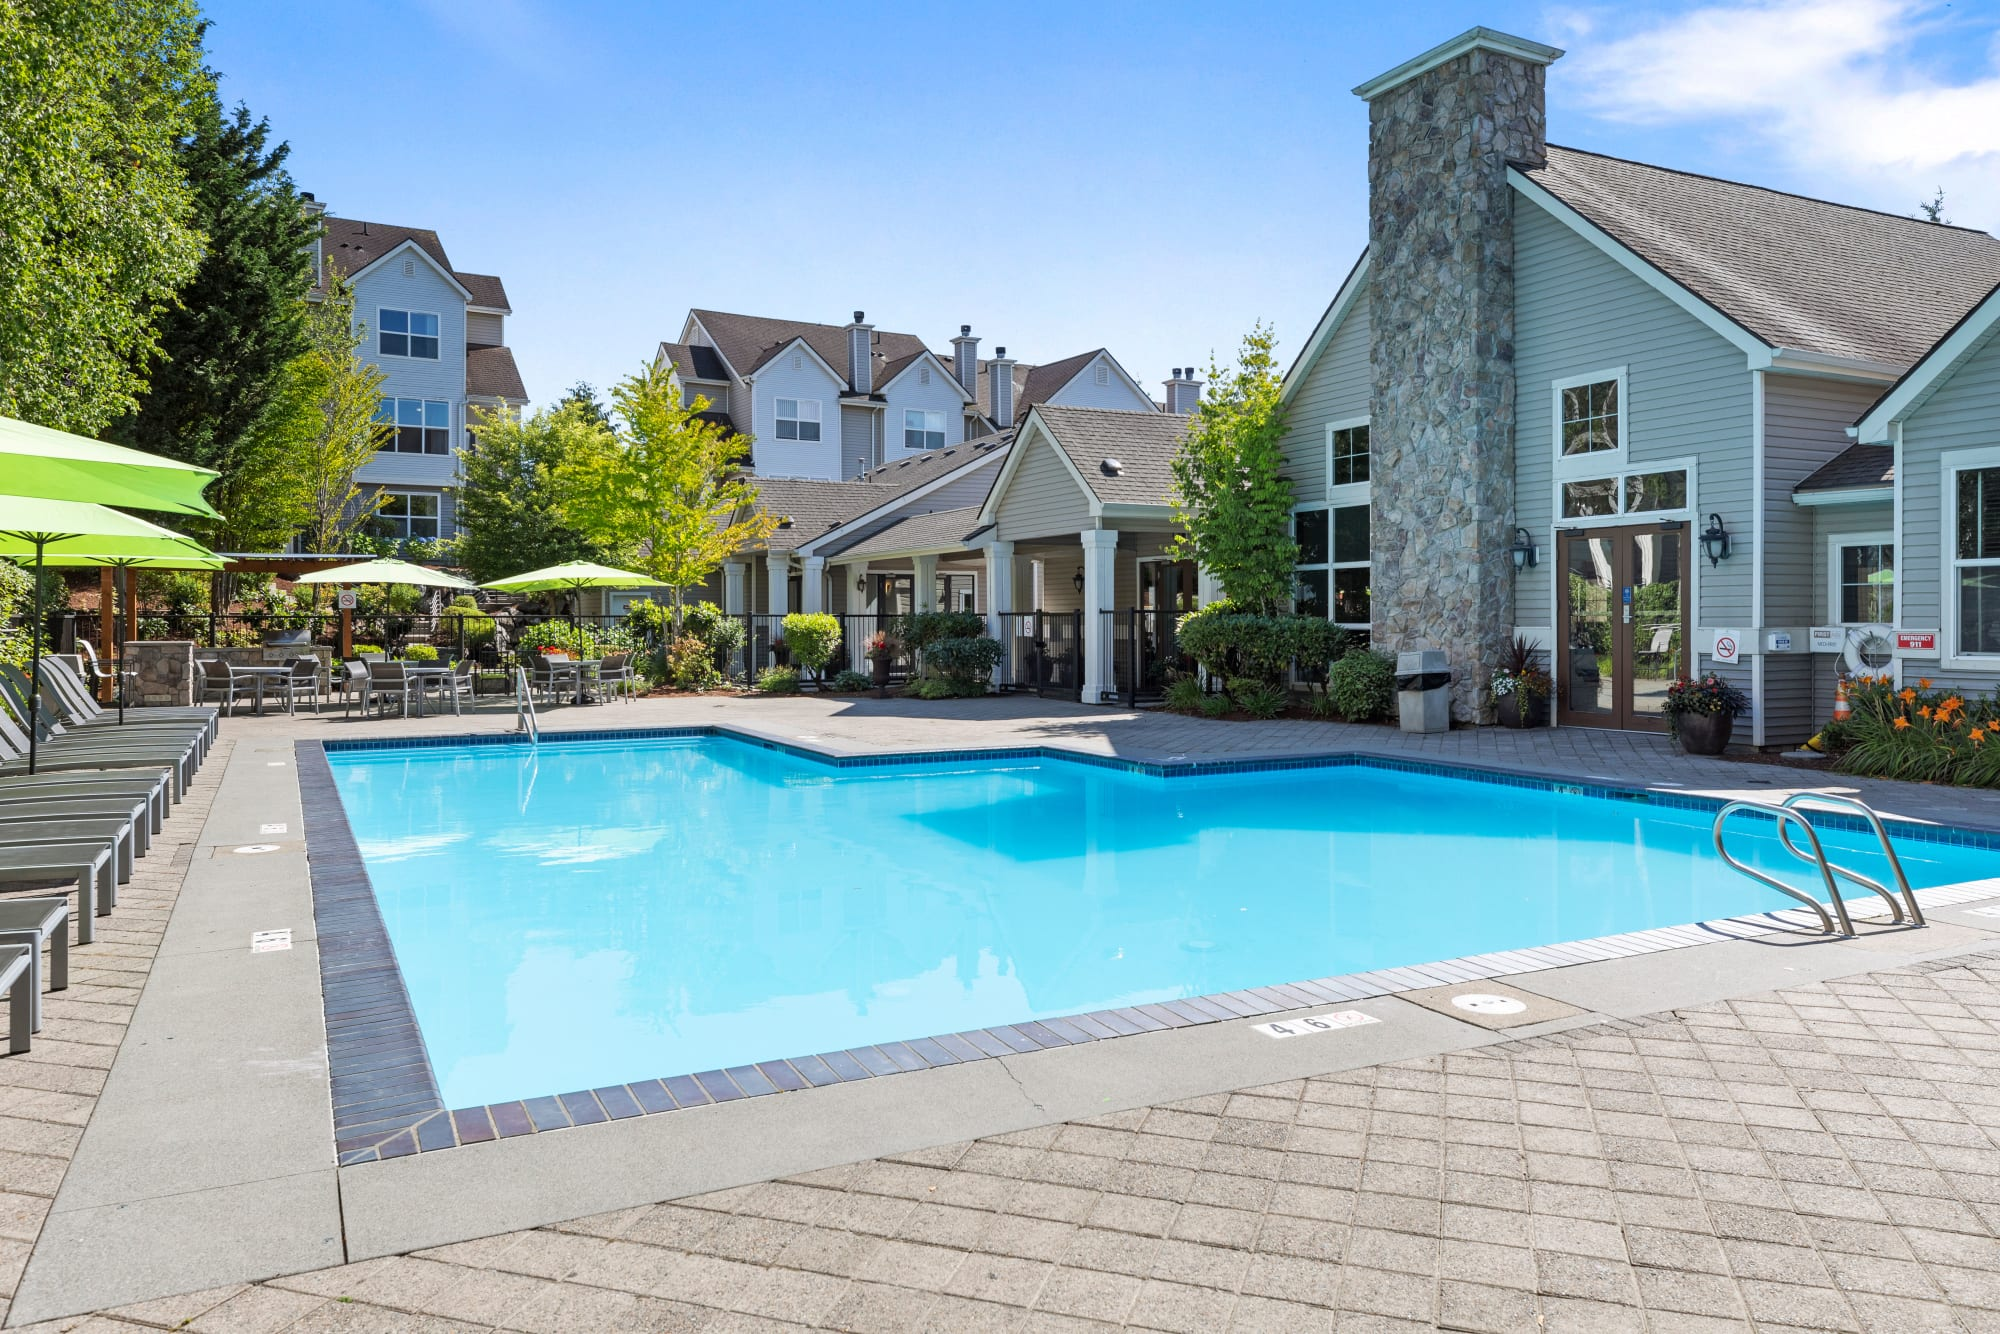 Expansive pool and deck at HighGrove Apartments in Everett, Washington